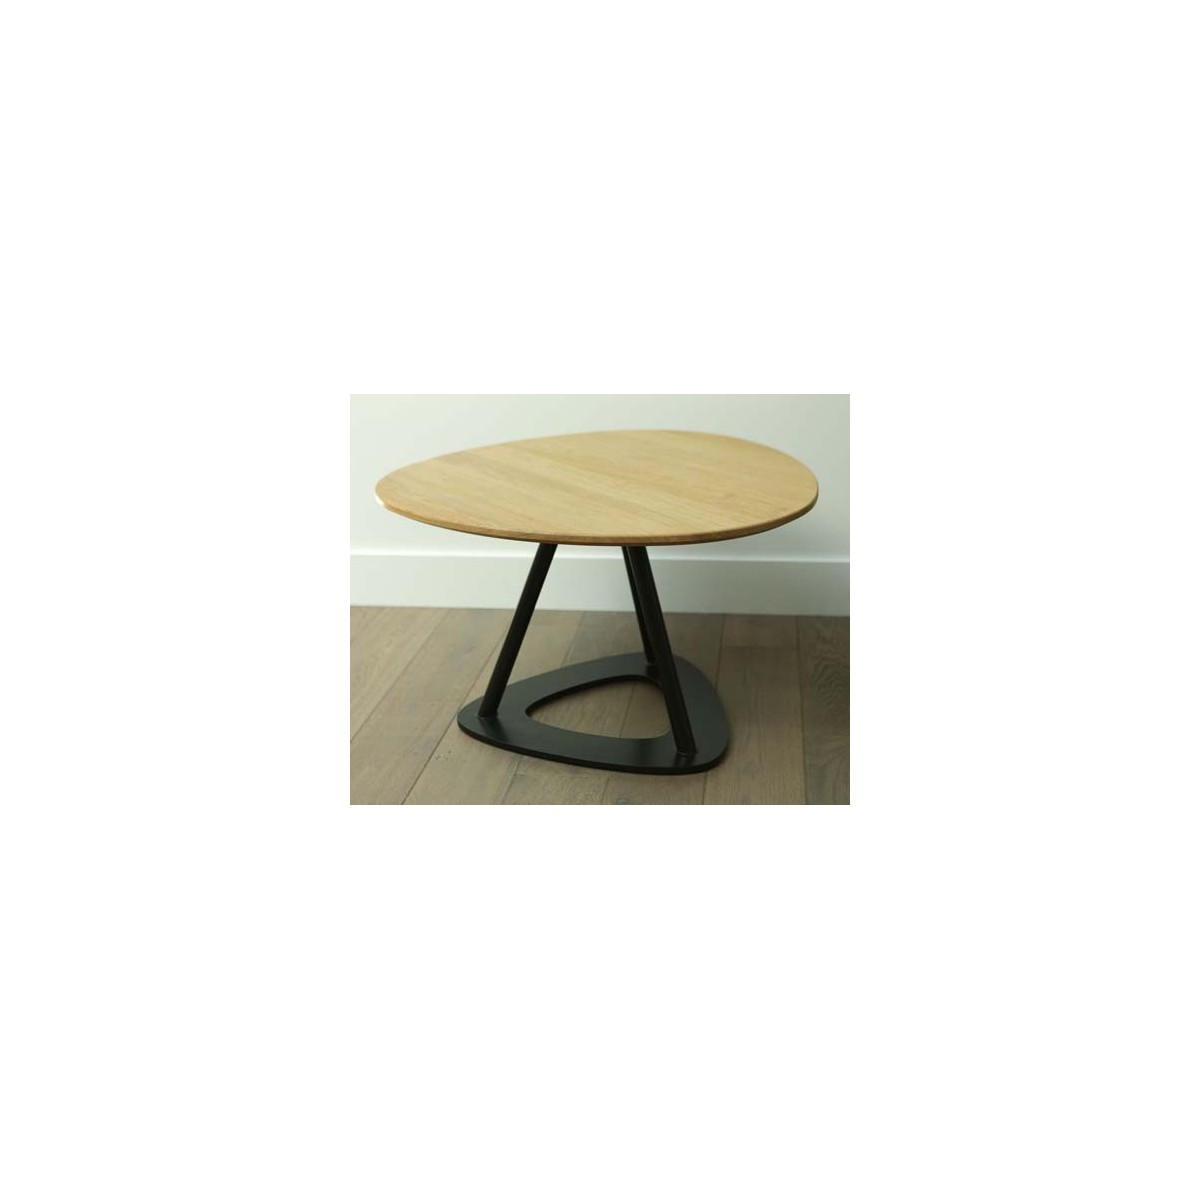 Tables basses contemporaines en ch ne et acier pop bois by miiing - Table moderne bois ...